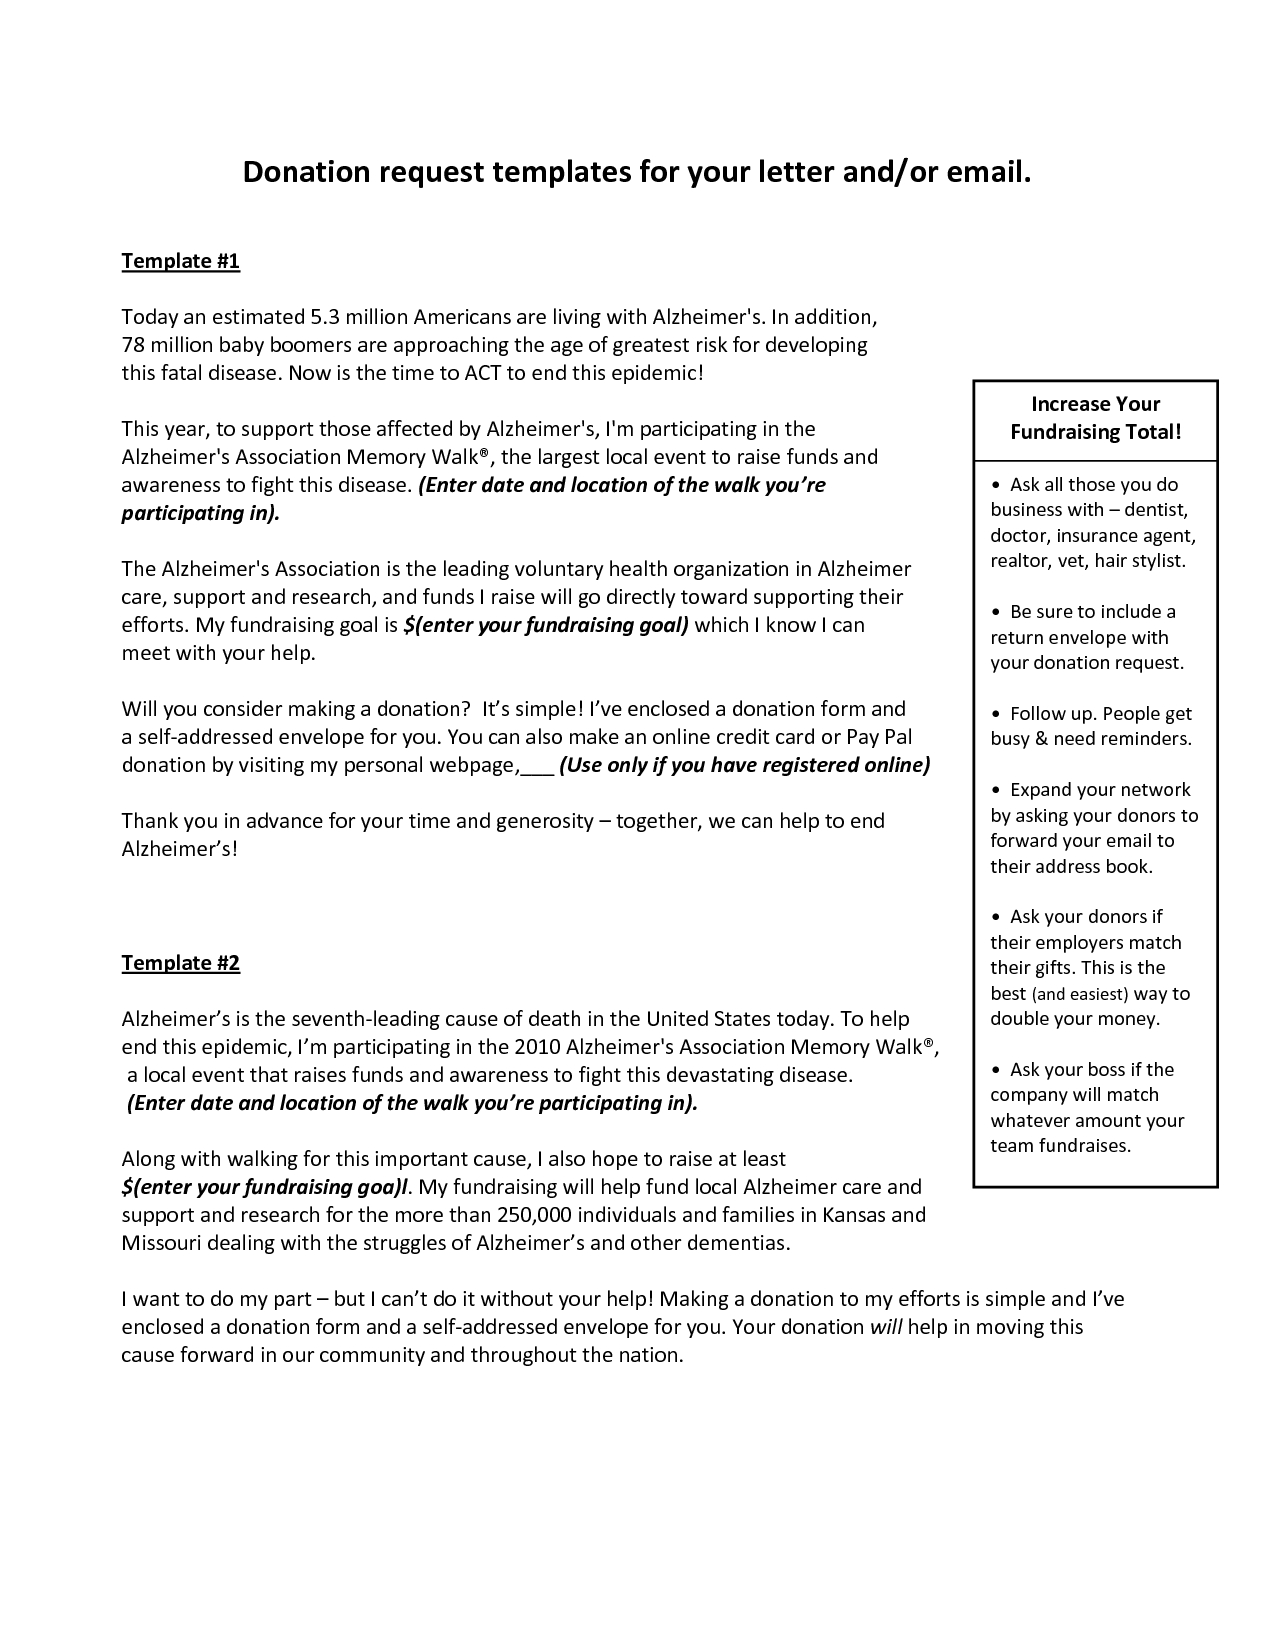 Charity Sponsorship Letter Template - How to Write A solicitation Letter for Donations Choice Image